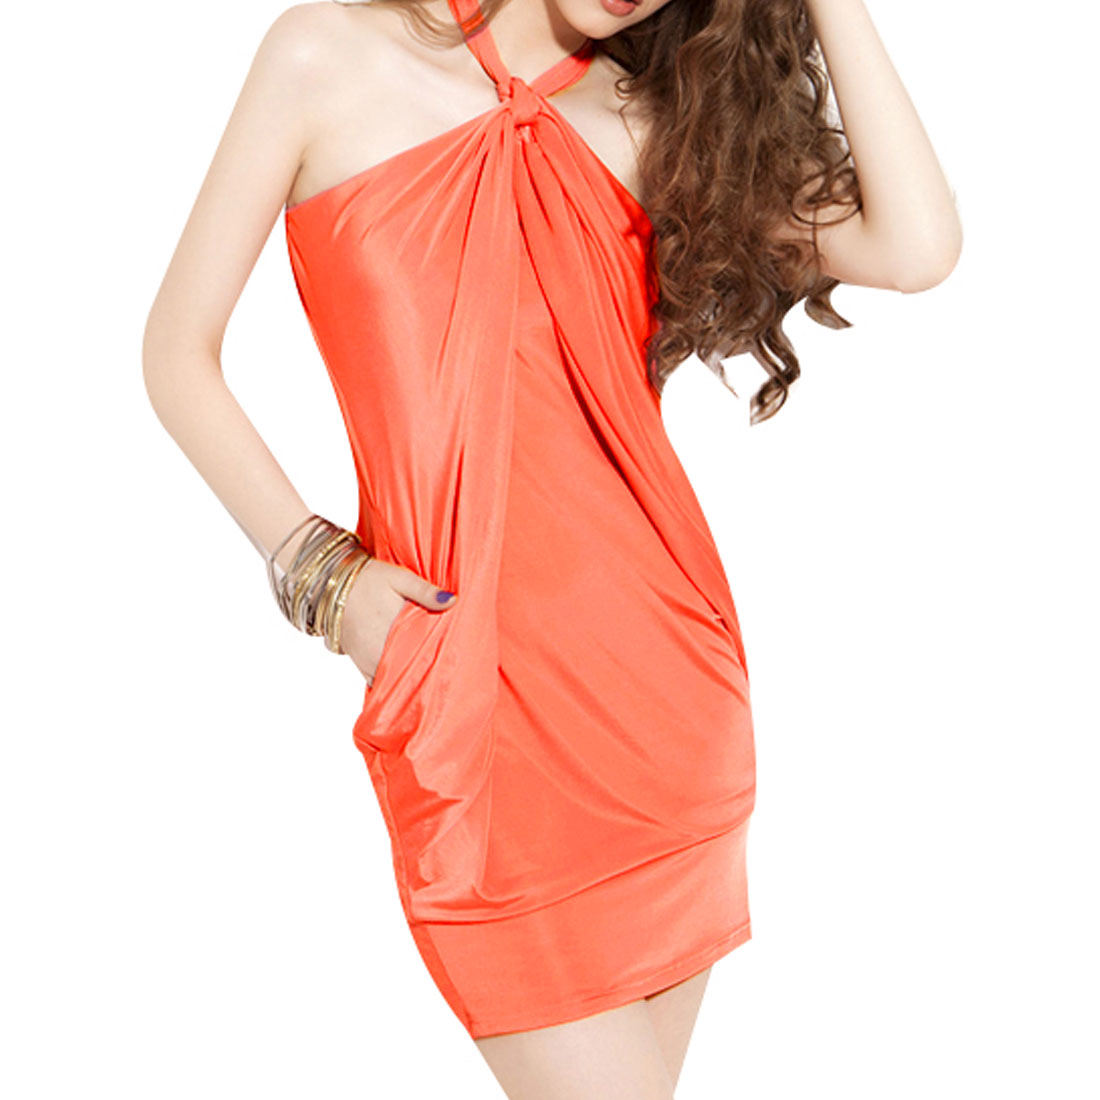 Lady Orange-Red Halter Neck Sleeveless Elastic Bust Bowknot Mini Dress XS